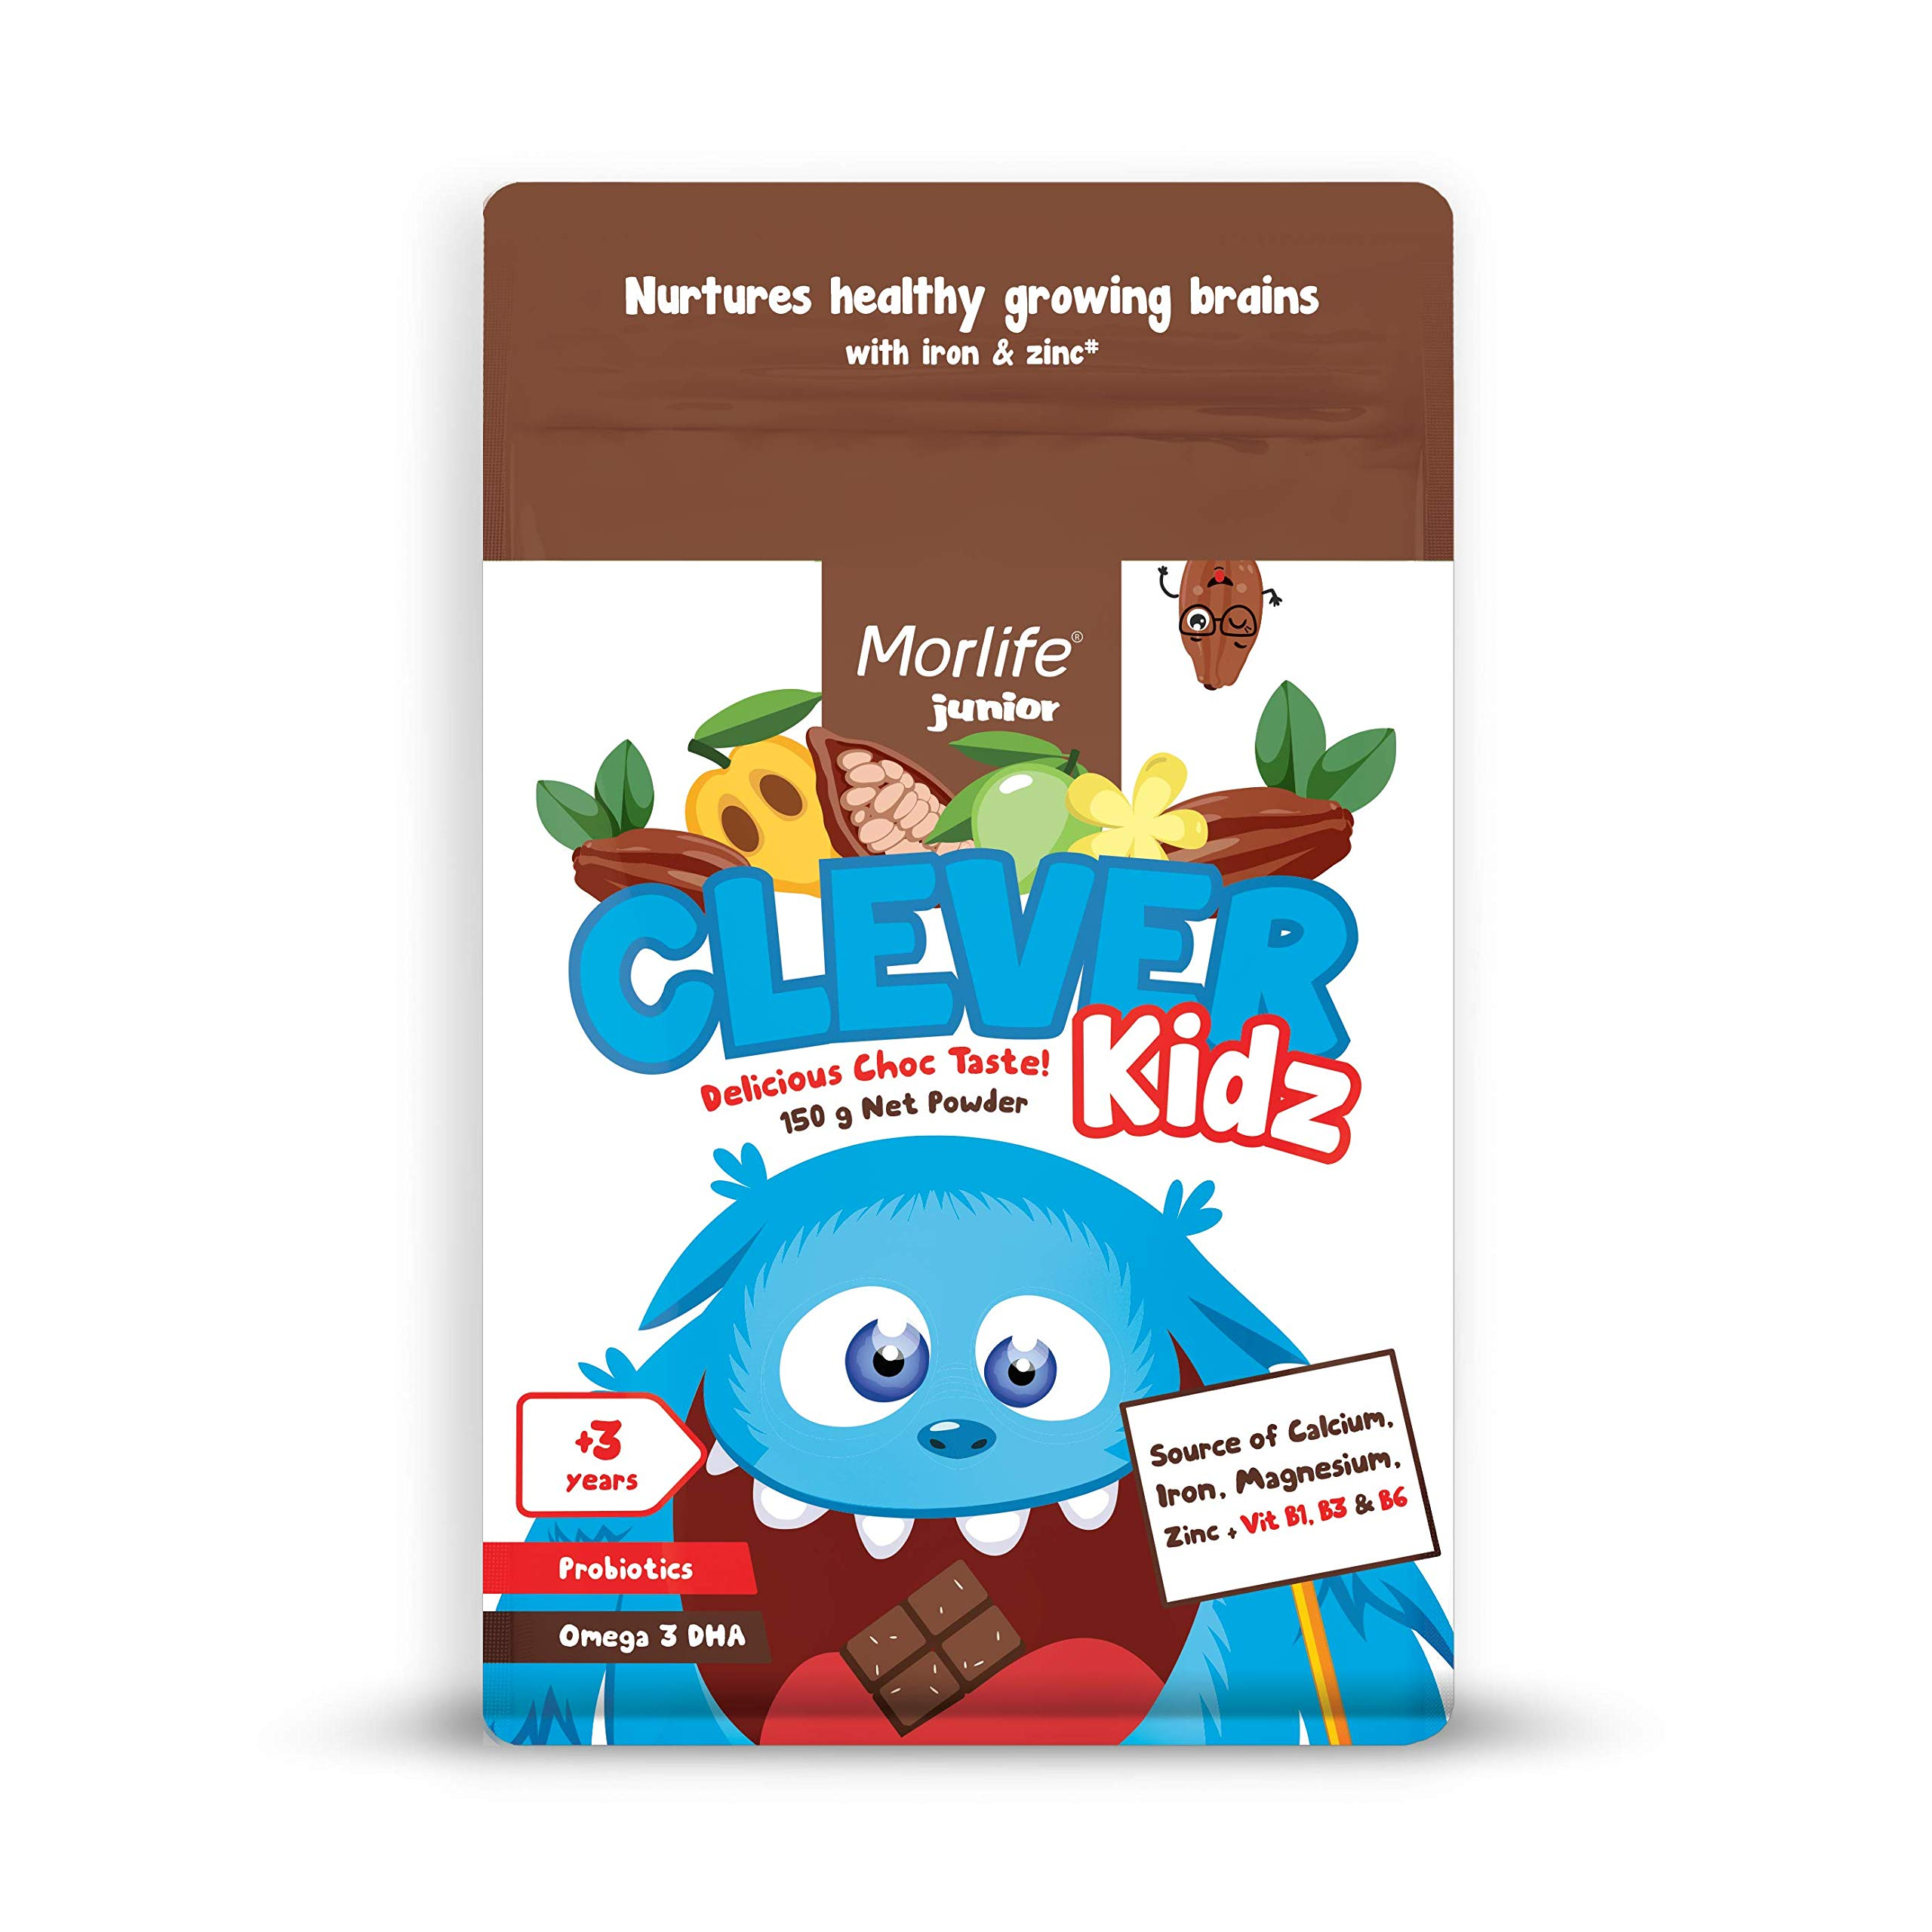 Clever Kidz Chocolate Drink 150g | Kids Vitamins minerals and DHA, Toddler Vitamins, Probiotics for kids with iron & zinc, 1.8 Billion Probiotics Tested & Approved for healthy growing brains 21 serves